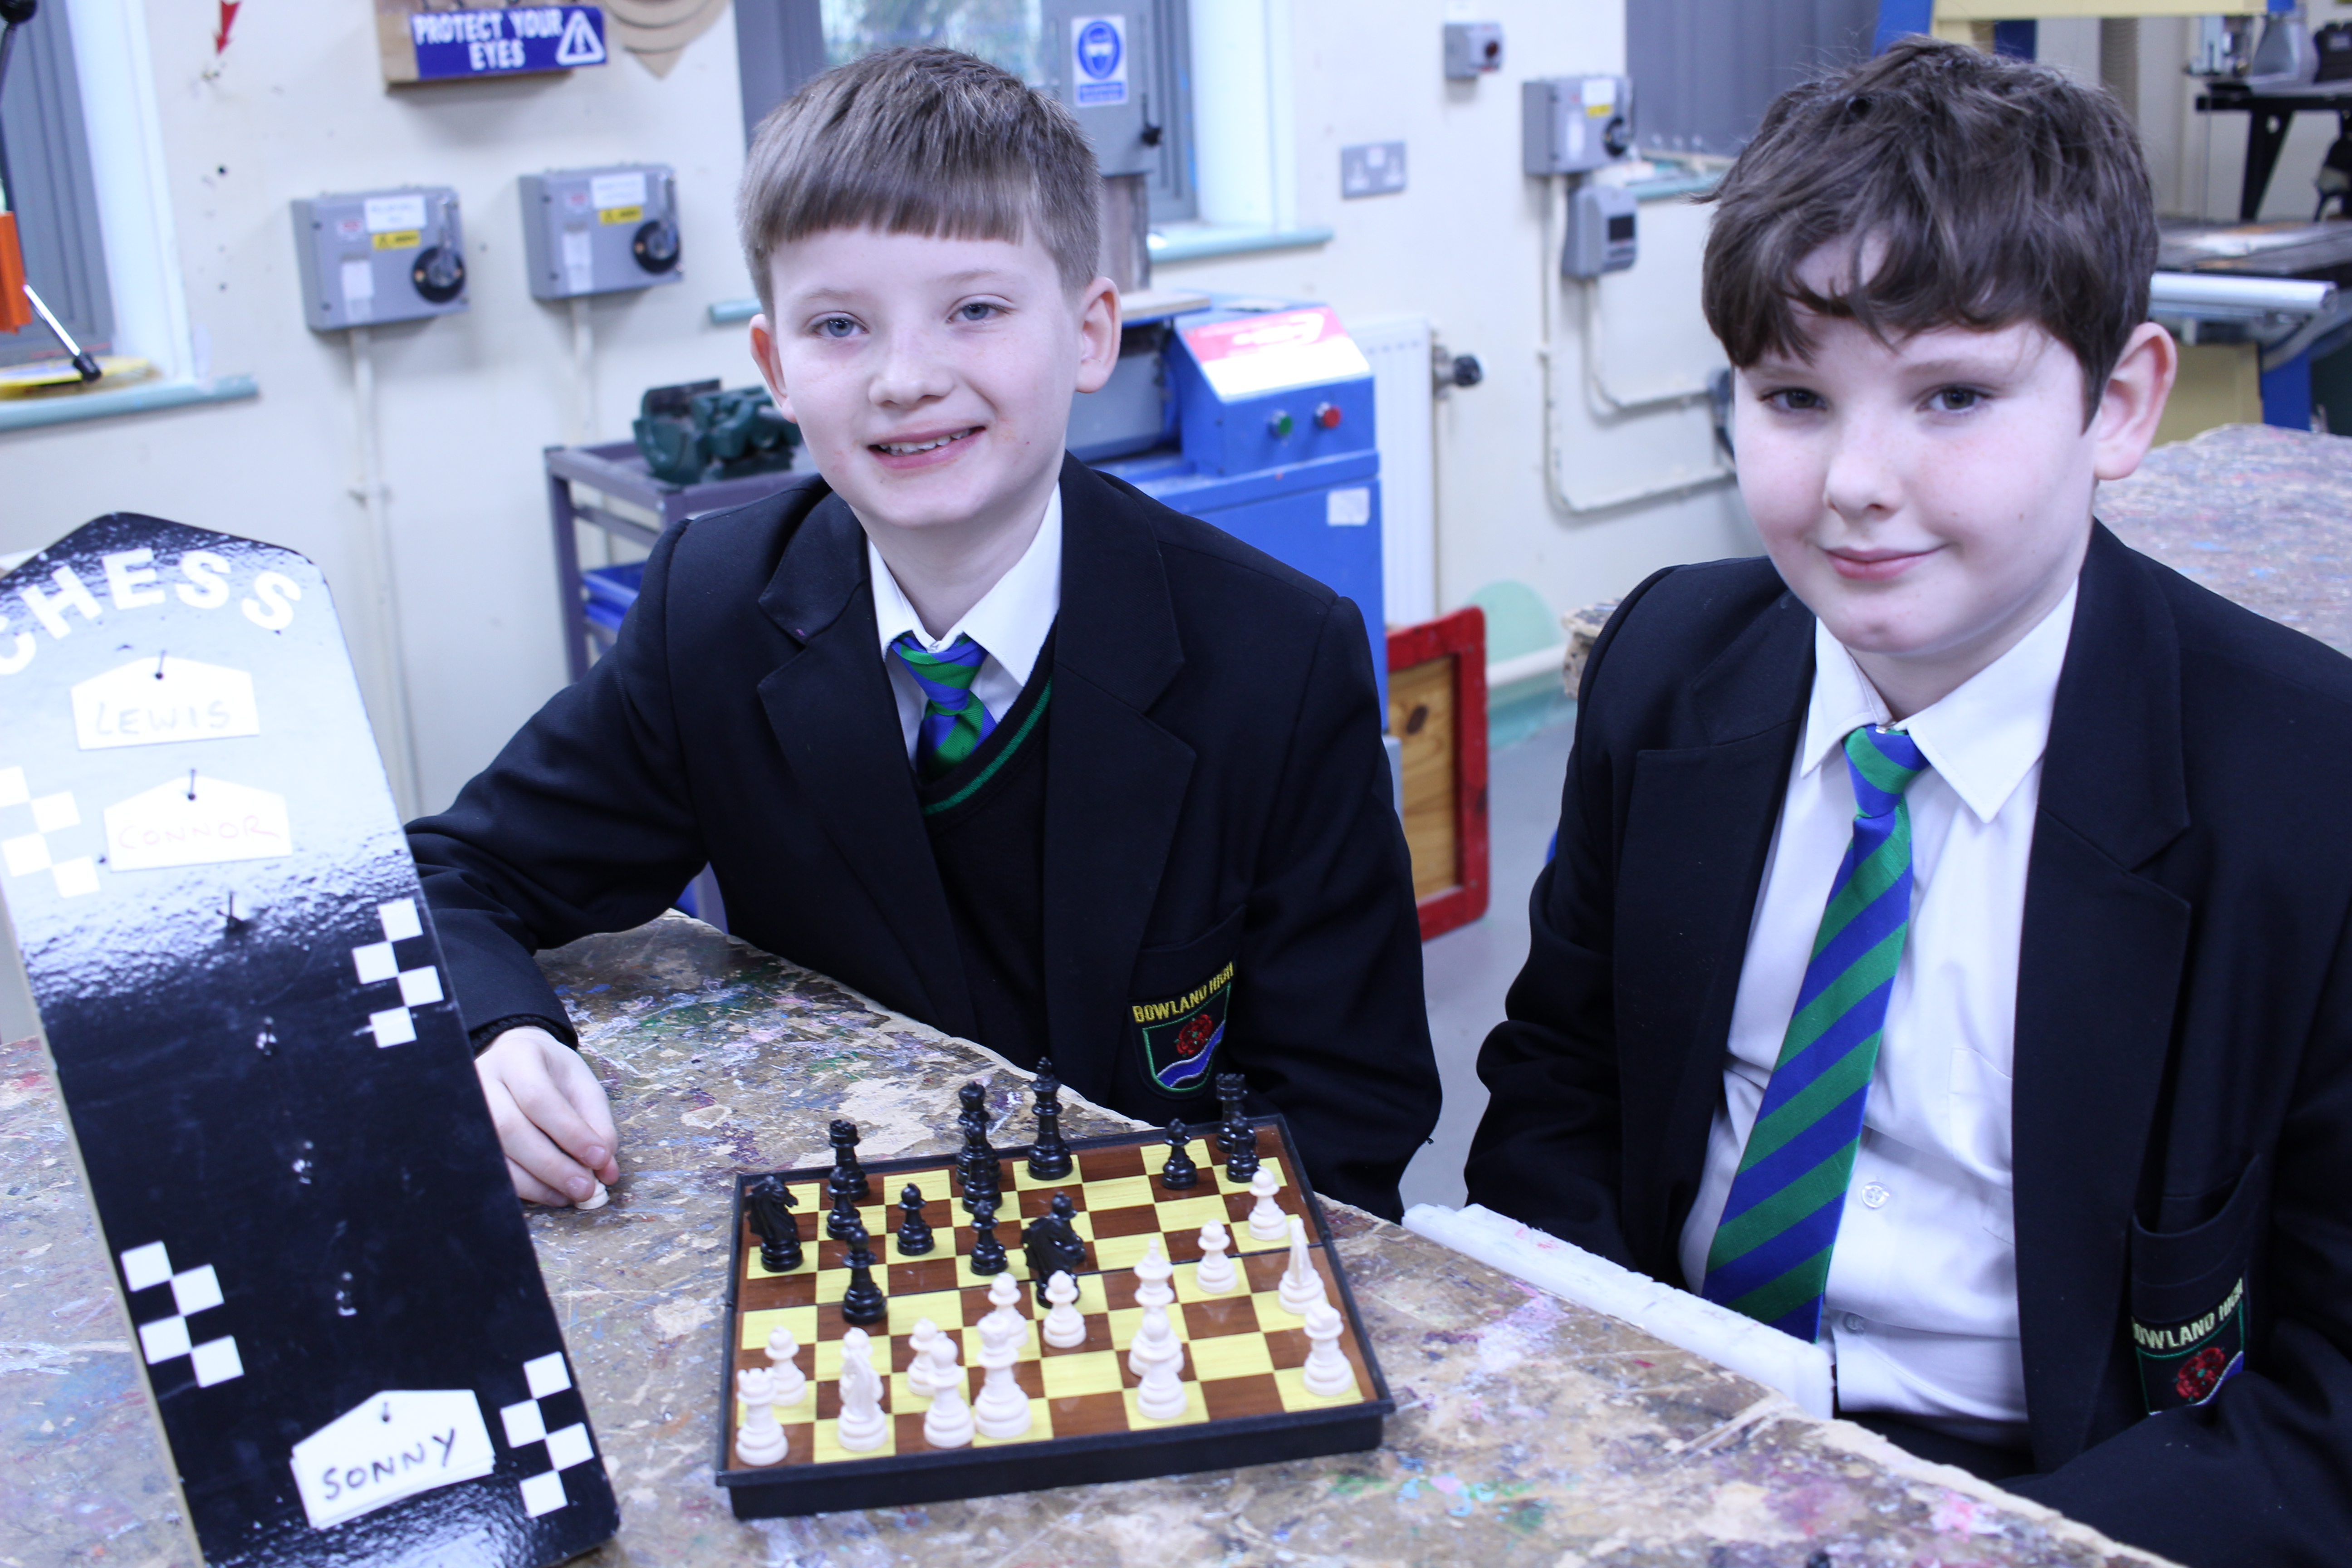 Chess Club and Toy Making Club